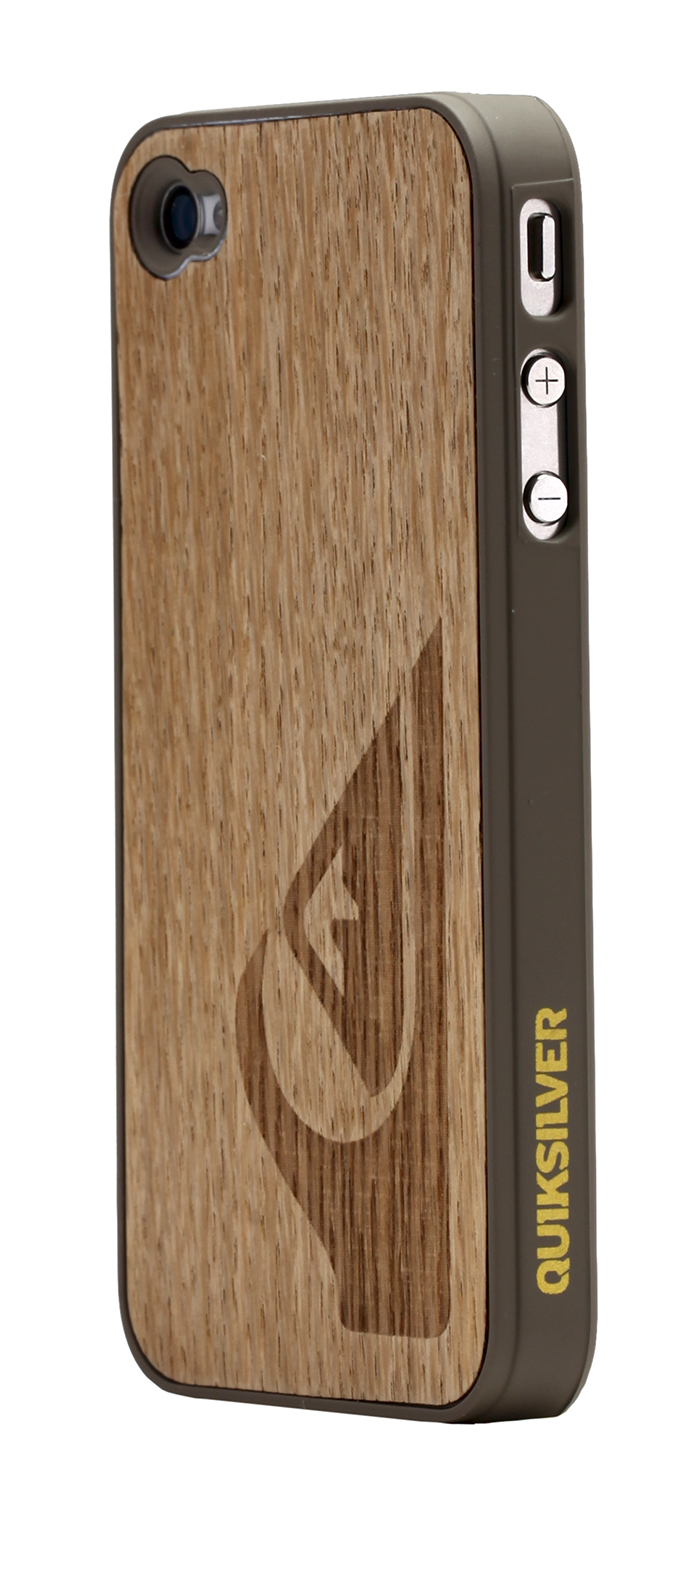 Quiksilver clear wood hard case for iPhone® 4/4S - Image   #1